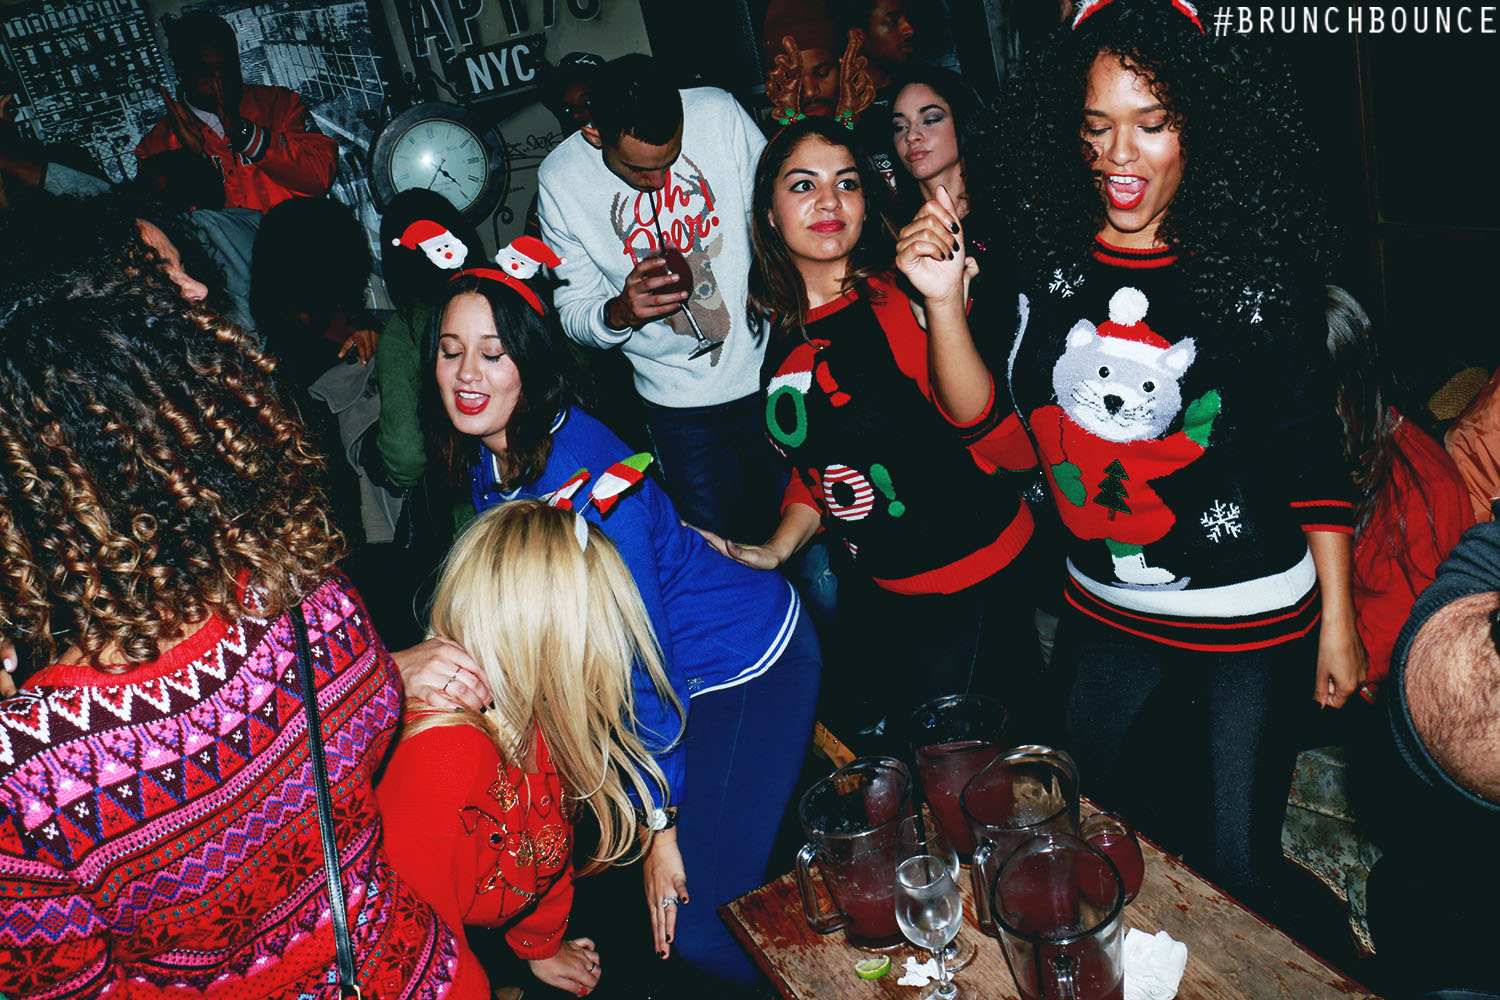 brunchbounce-ugly-christmas-sweater-party-122014_15463069293_o.jpg